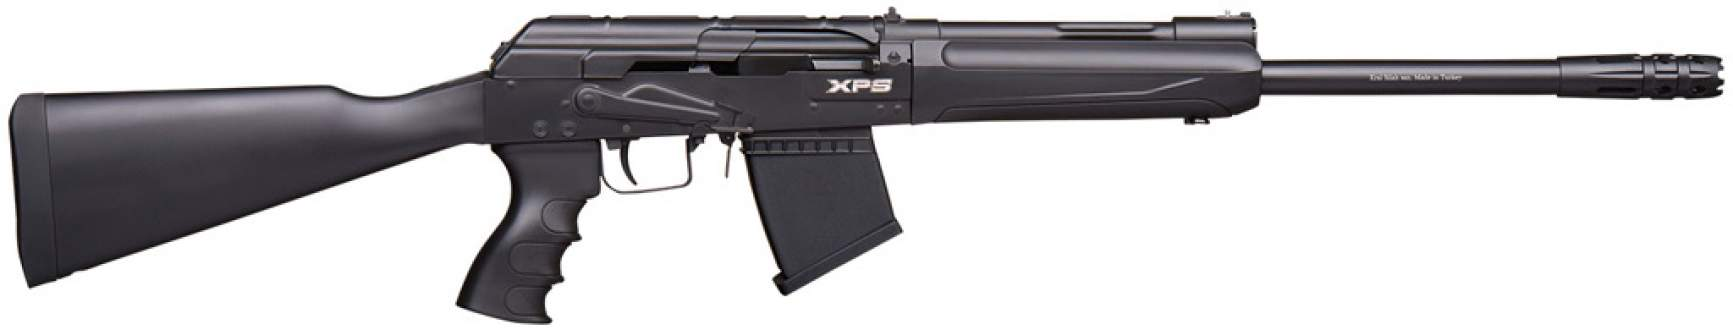 Ружье Kral Arms XPS кал. 12/76